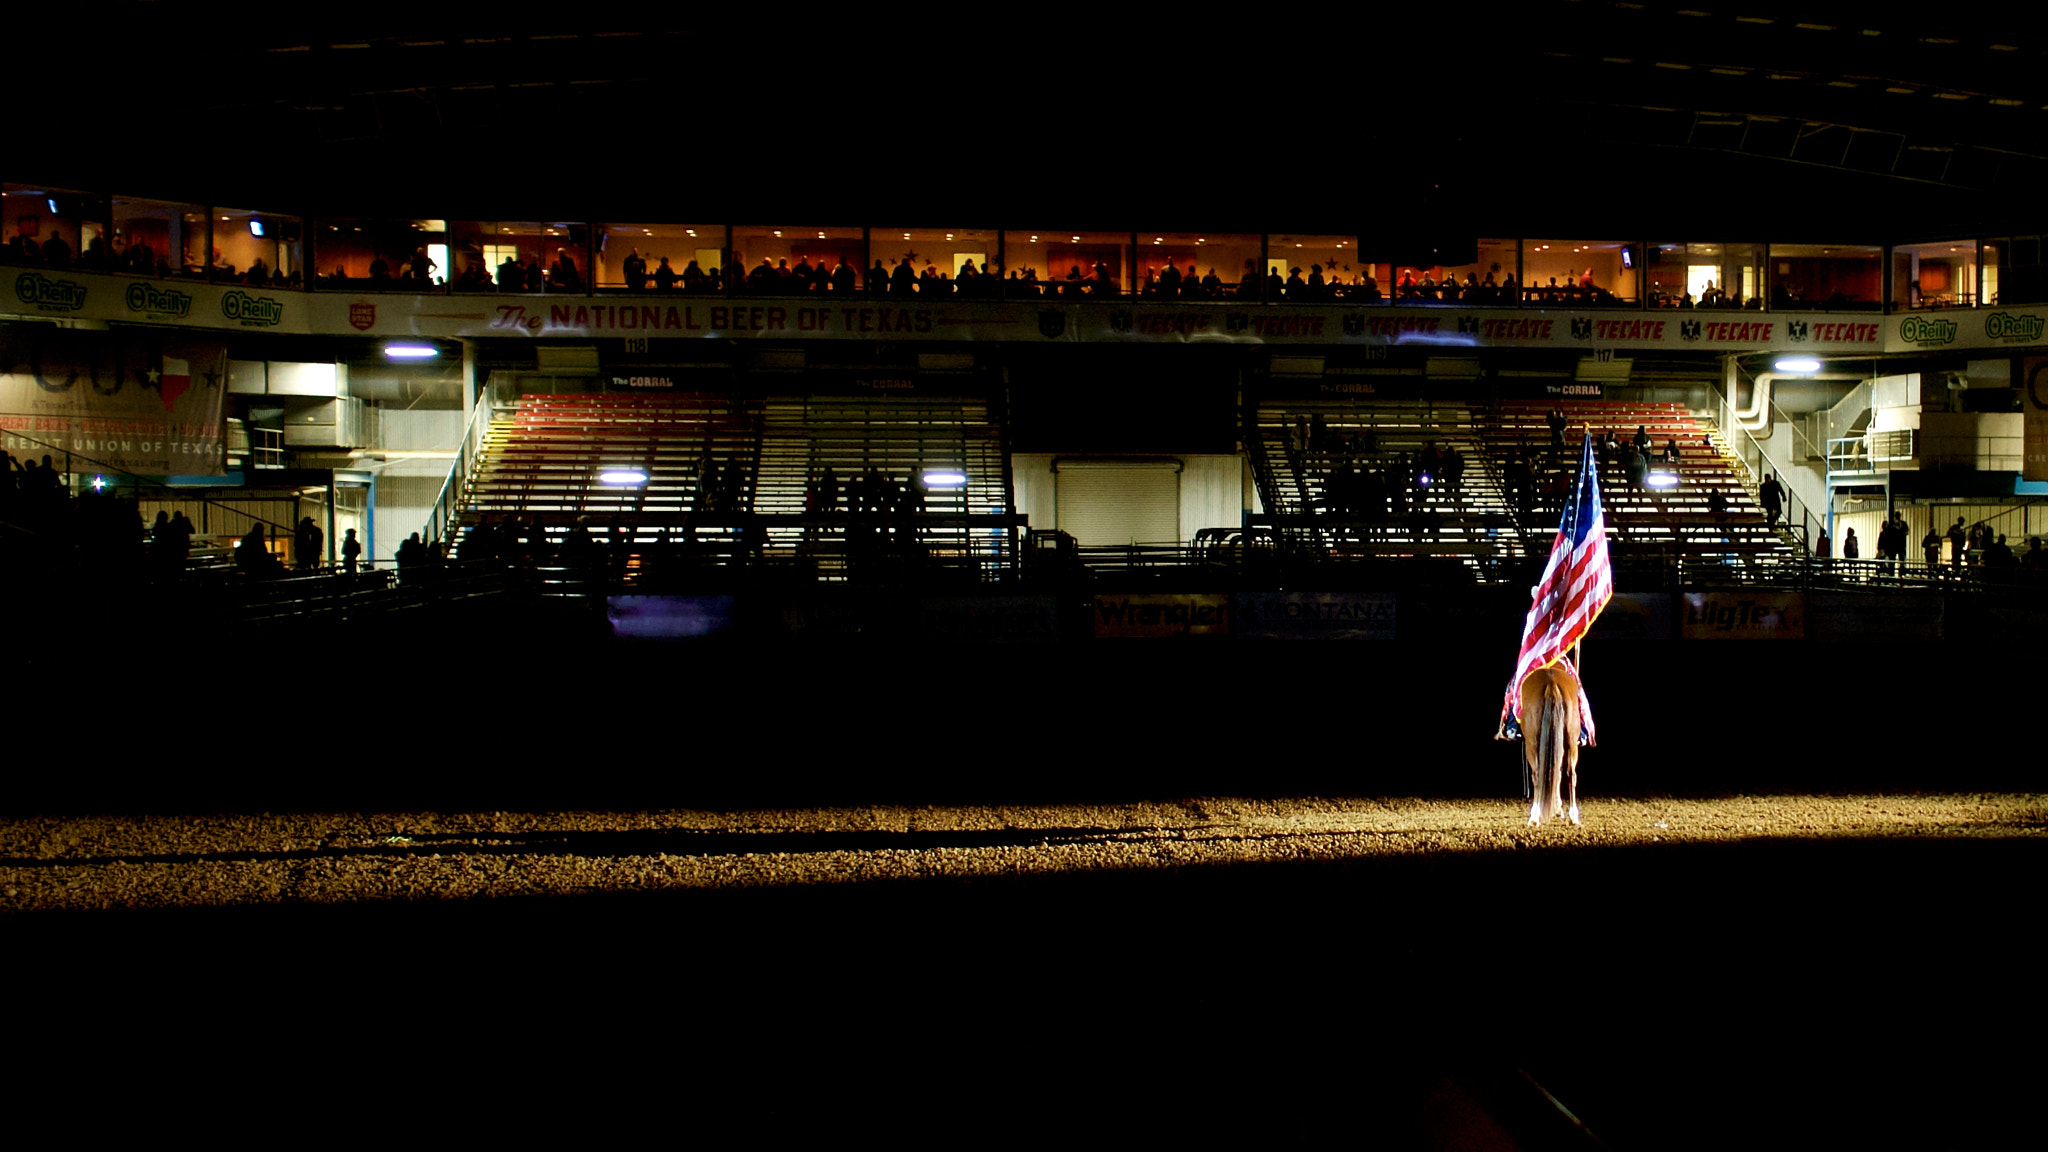 Photograph Dallas Rodeo - Texas by David Ianni on 500px